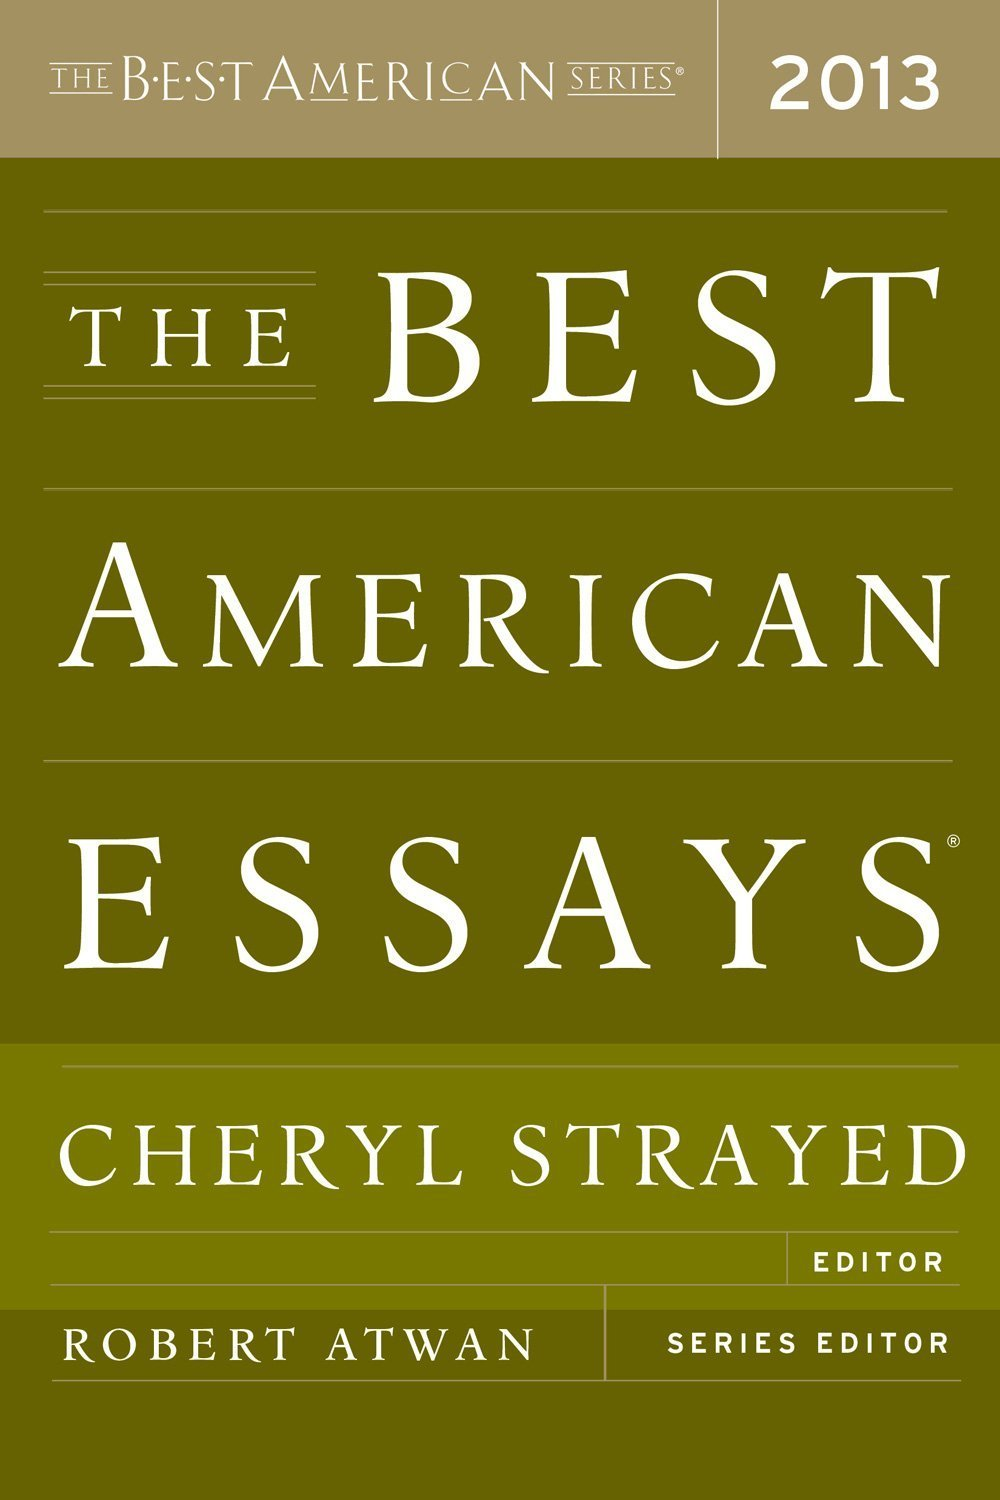 004 The Best American Essays Essay Wonderful 2018 List Pdf Download 2017 Free Full